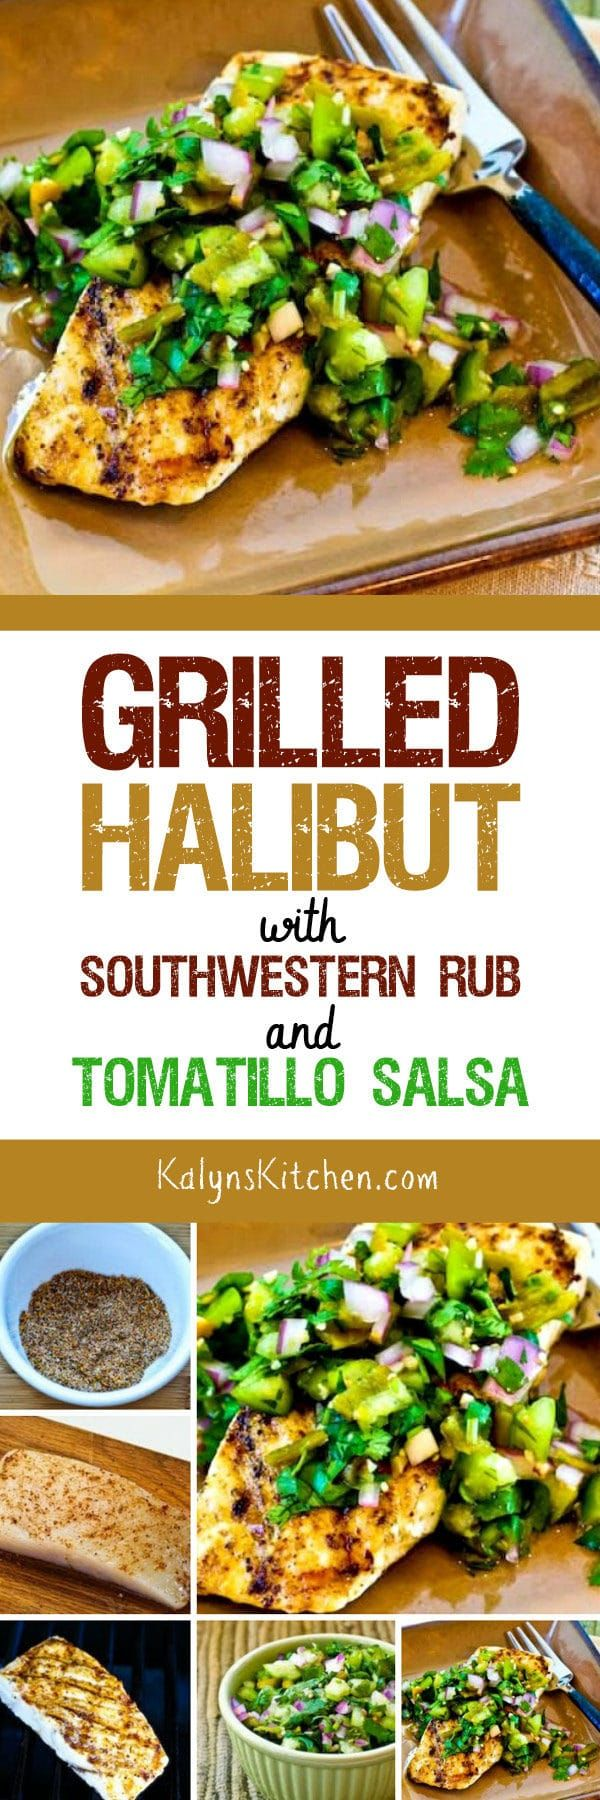 Grilled Halibut with Southwestern Rub and Tomatillo Salsa